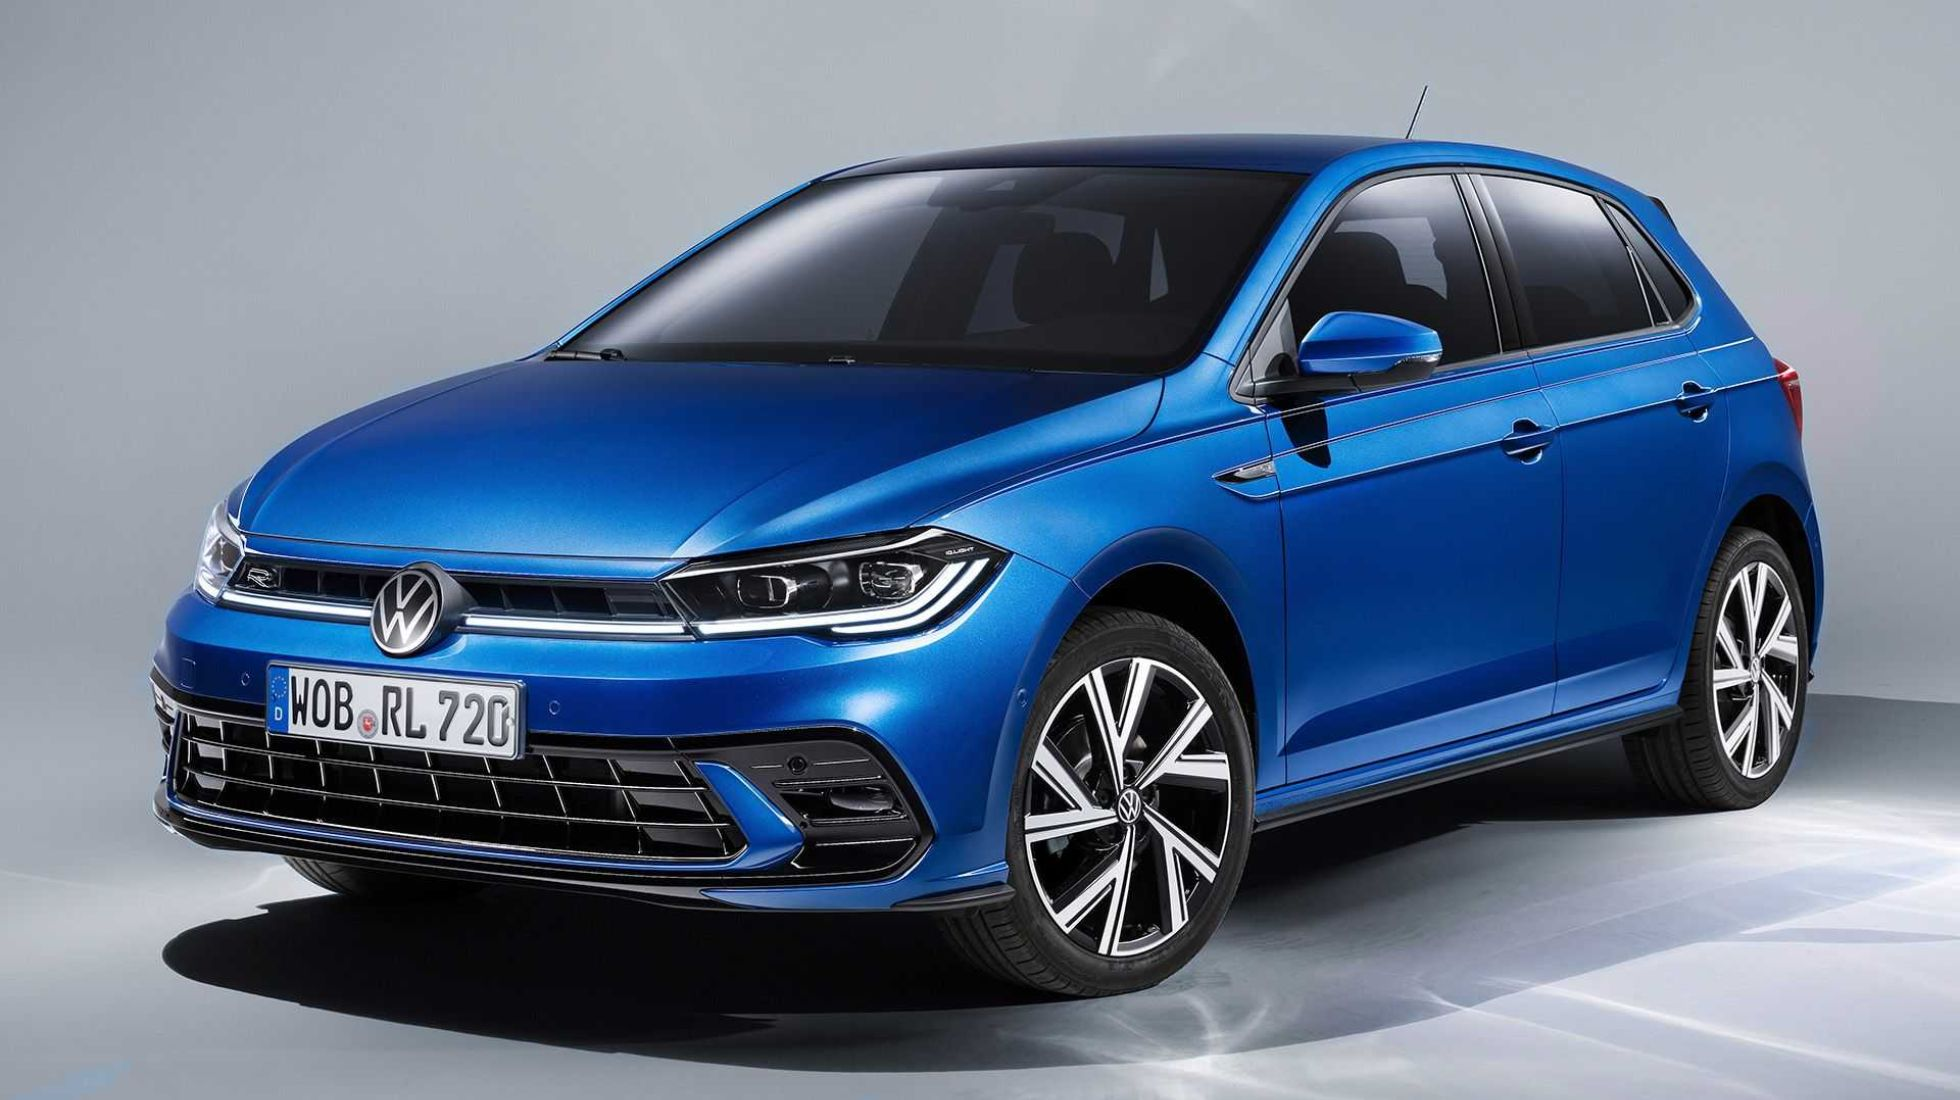 Volkswagen's Polo goes under the knife